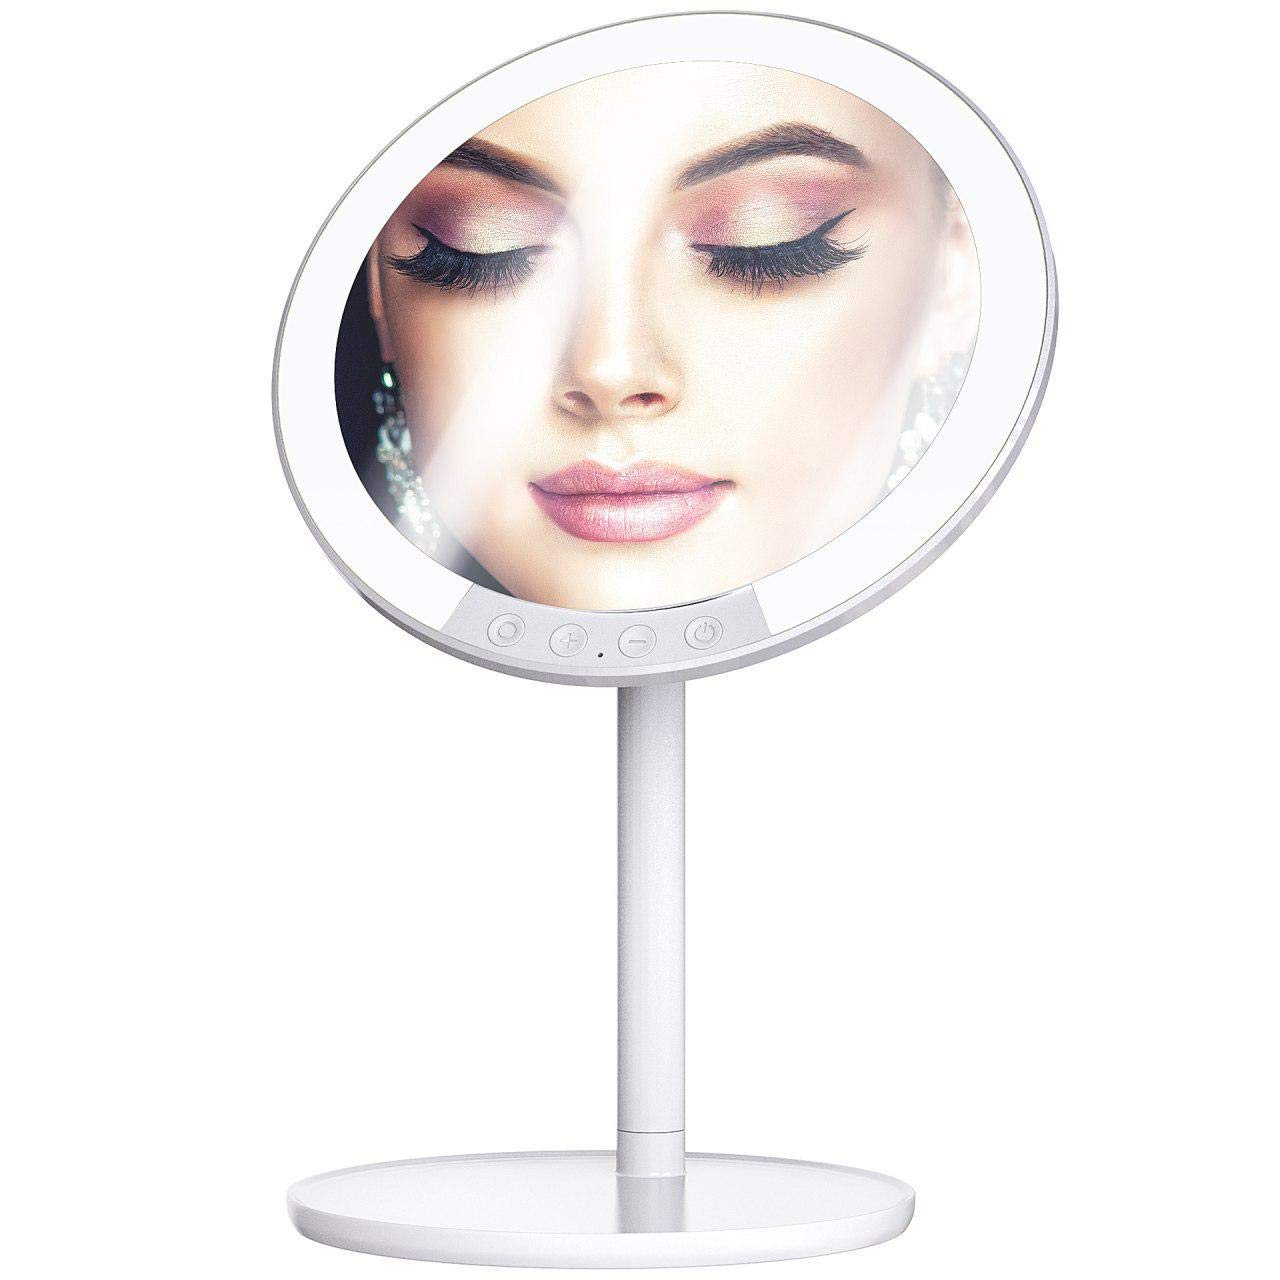 Professional 8.5 Makeup Vanity Mirror LED Lighted with 3 Color Lighting Modes, 66 Pro-Lux Extra-Bright Lights – Rechargeable, 1x-7x Magnification, 90 Degree Rotation for Travel Cosmetic Mirrors